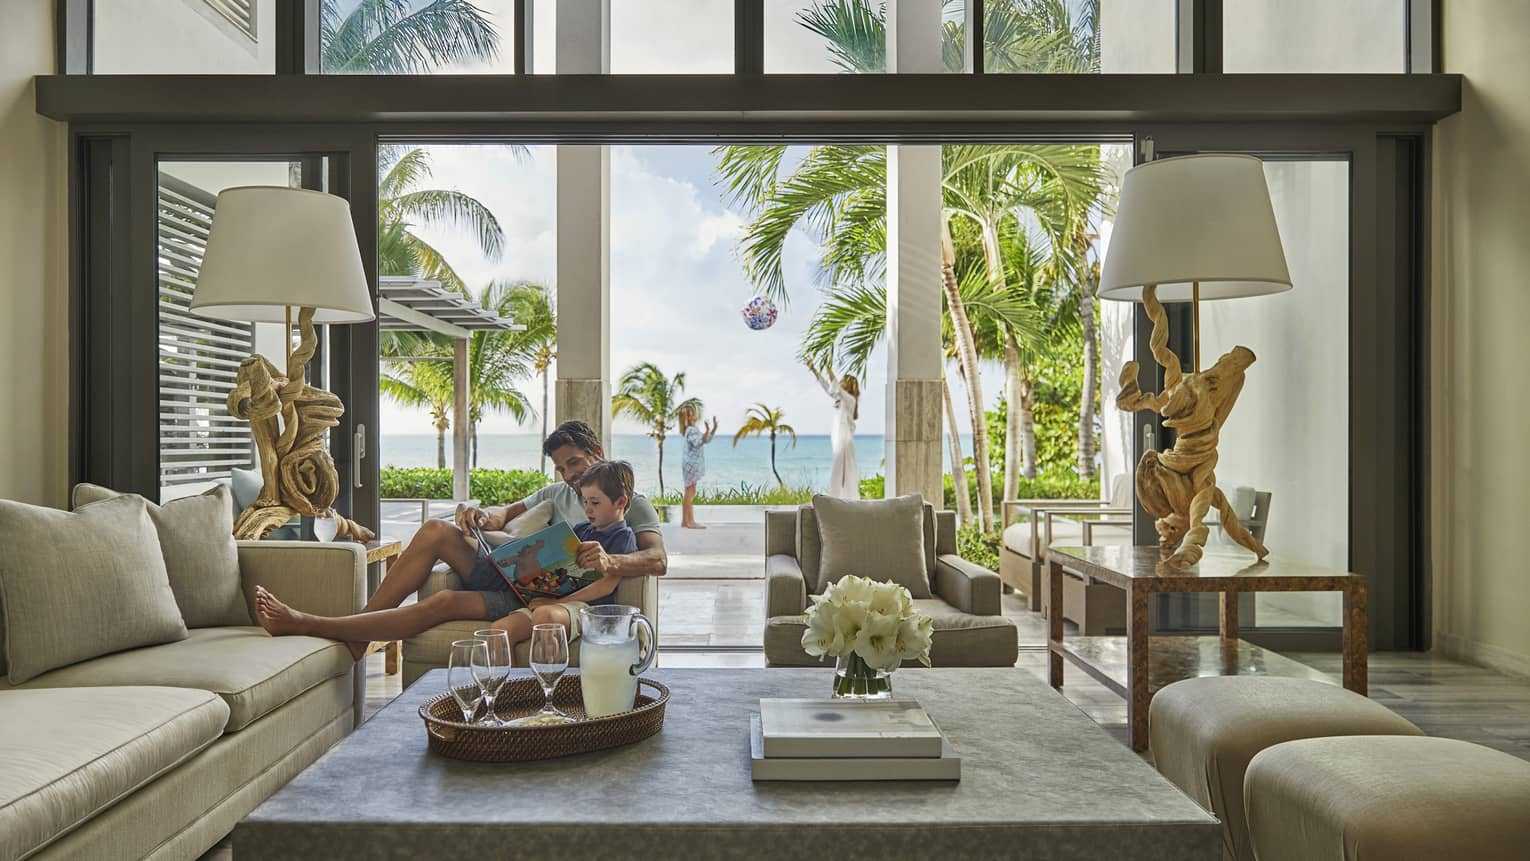 A father reading to his son in a luxurious living room leading out onto a terrace with the ocean and palm trees beyond.